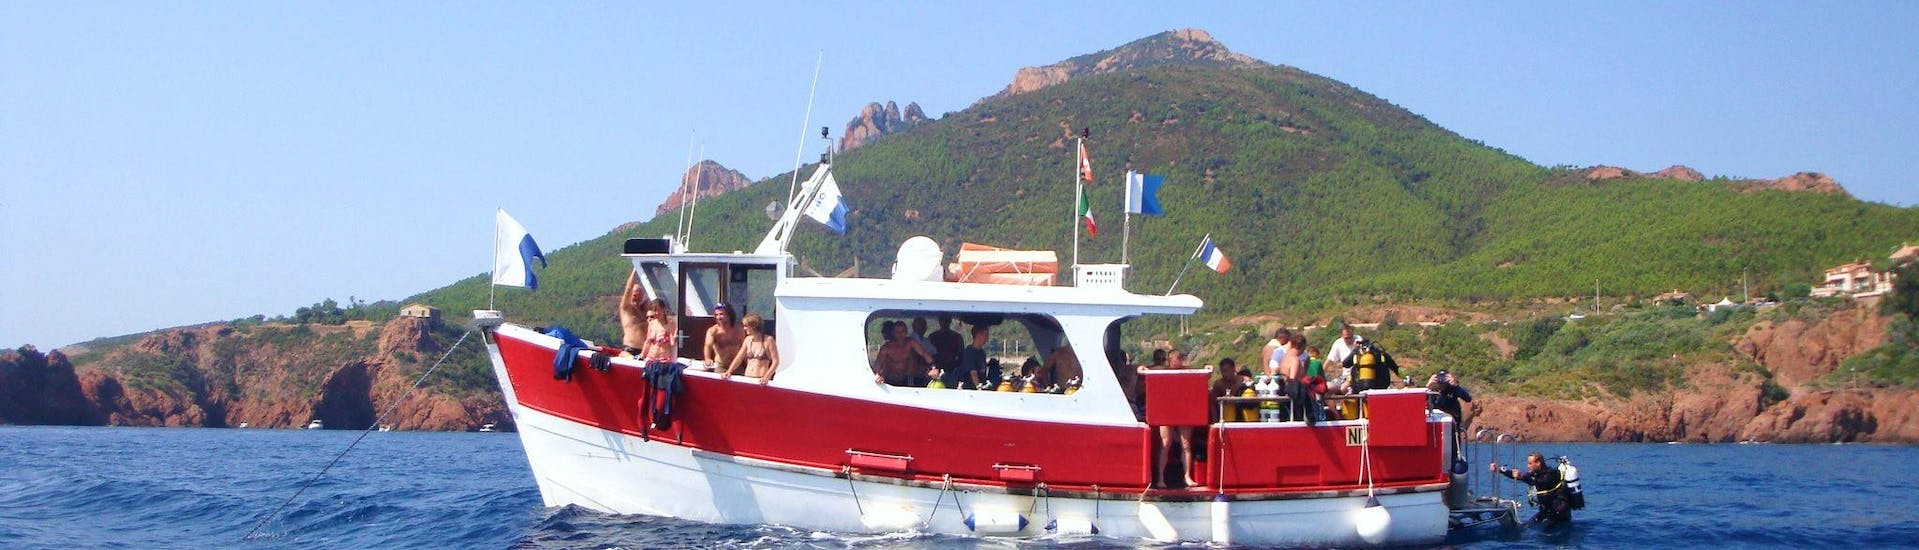 View of the Dive Center La Rague boat in front of the Estérel massif used for snorkeling trips and diving courses near Cannes.